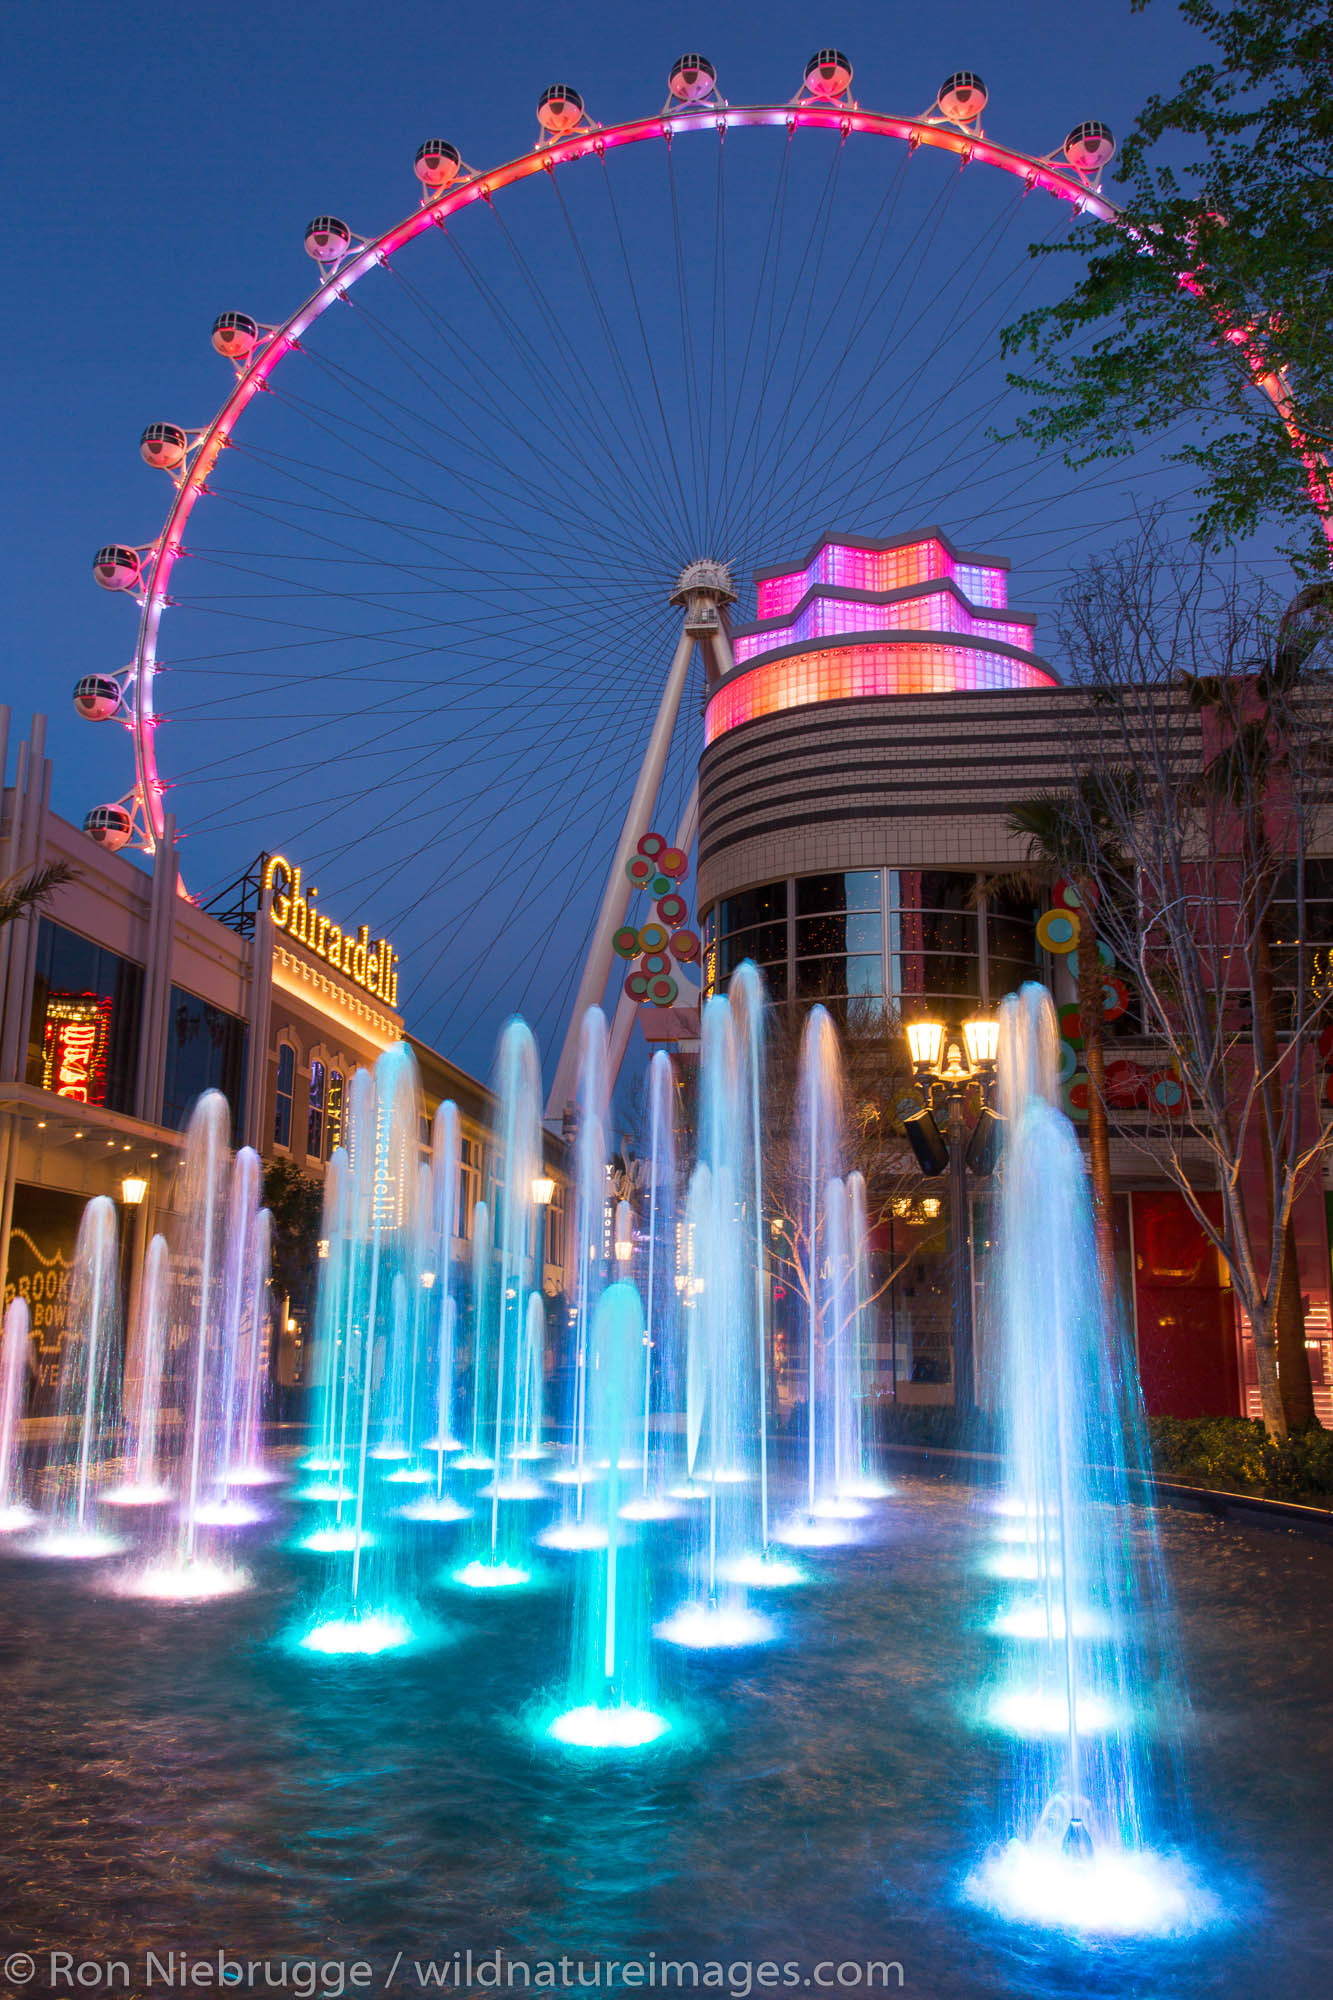 The High Roller ferris whell at The Linq, Las Vegas, Nevada.